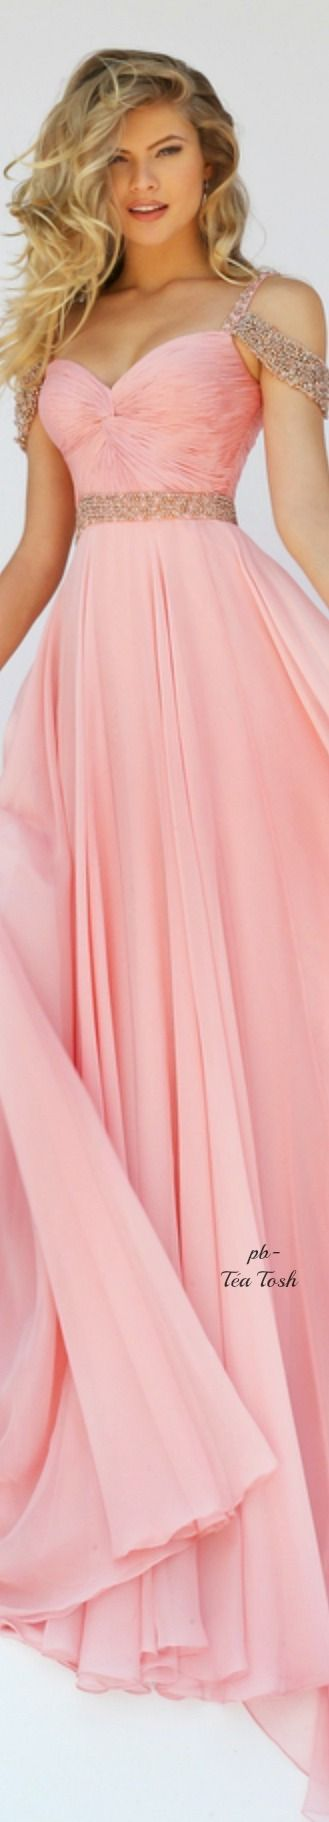 660 best Dresses and accessories 2 images on Pinterest | Classy ...